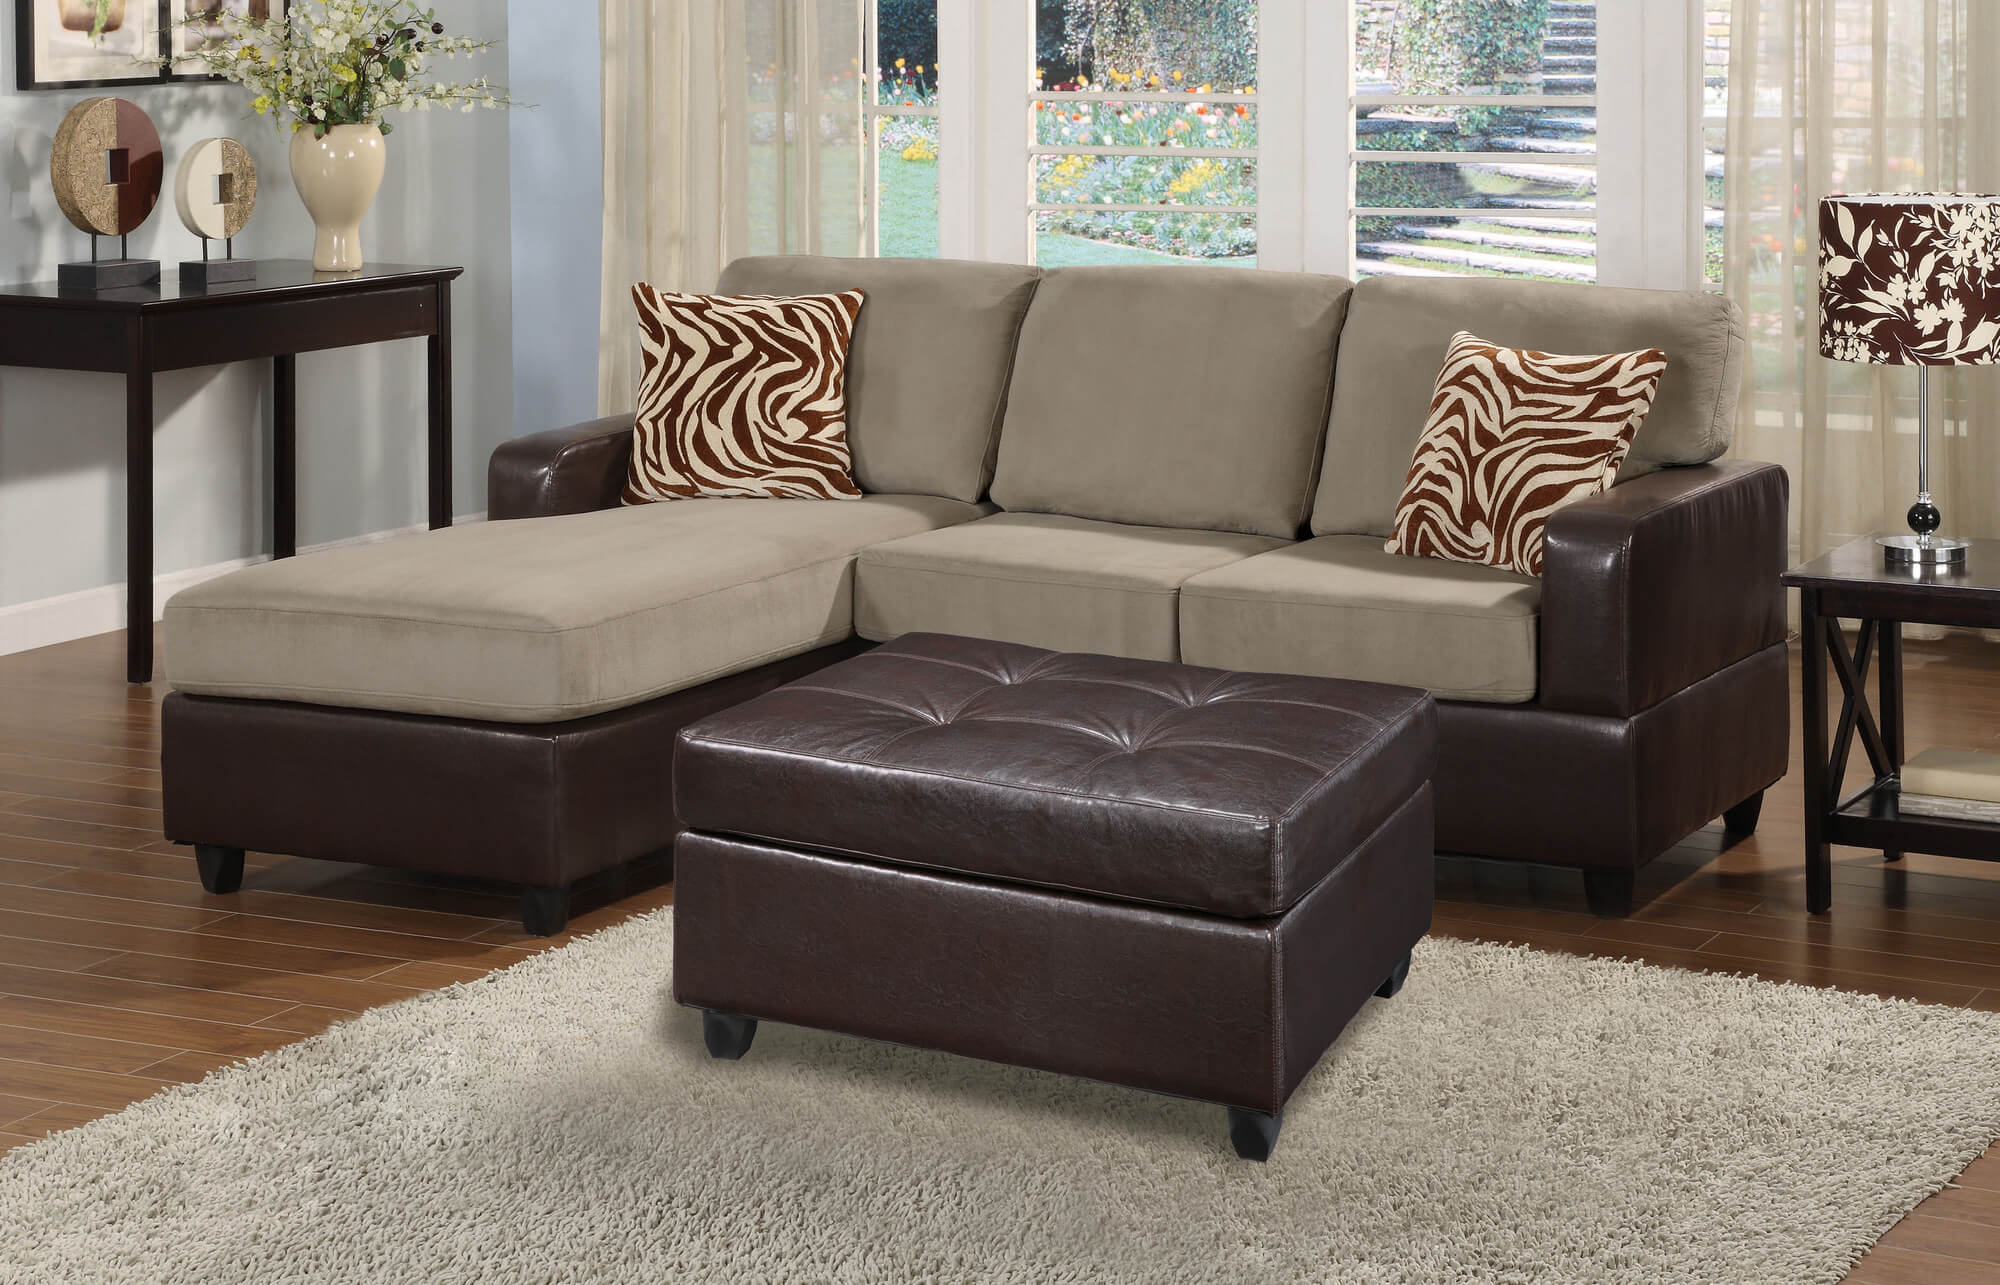 100 Awesome Sectional Sofas Under 1 000 2019